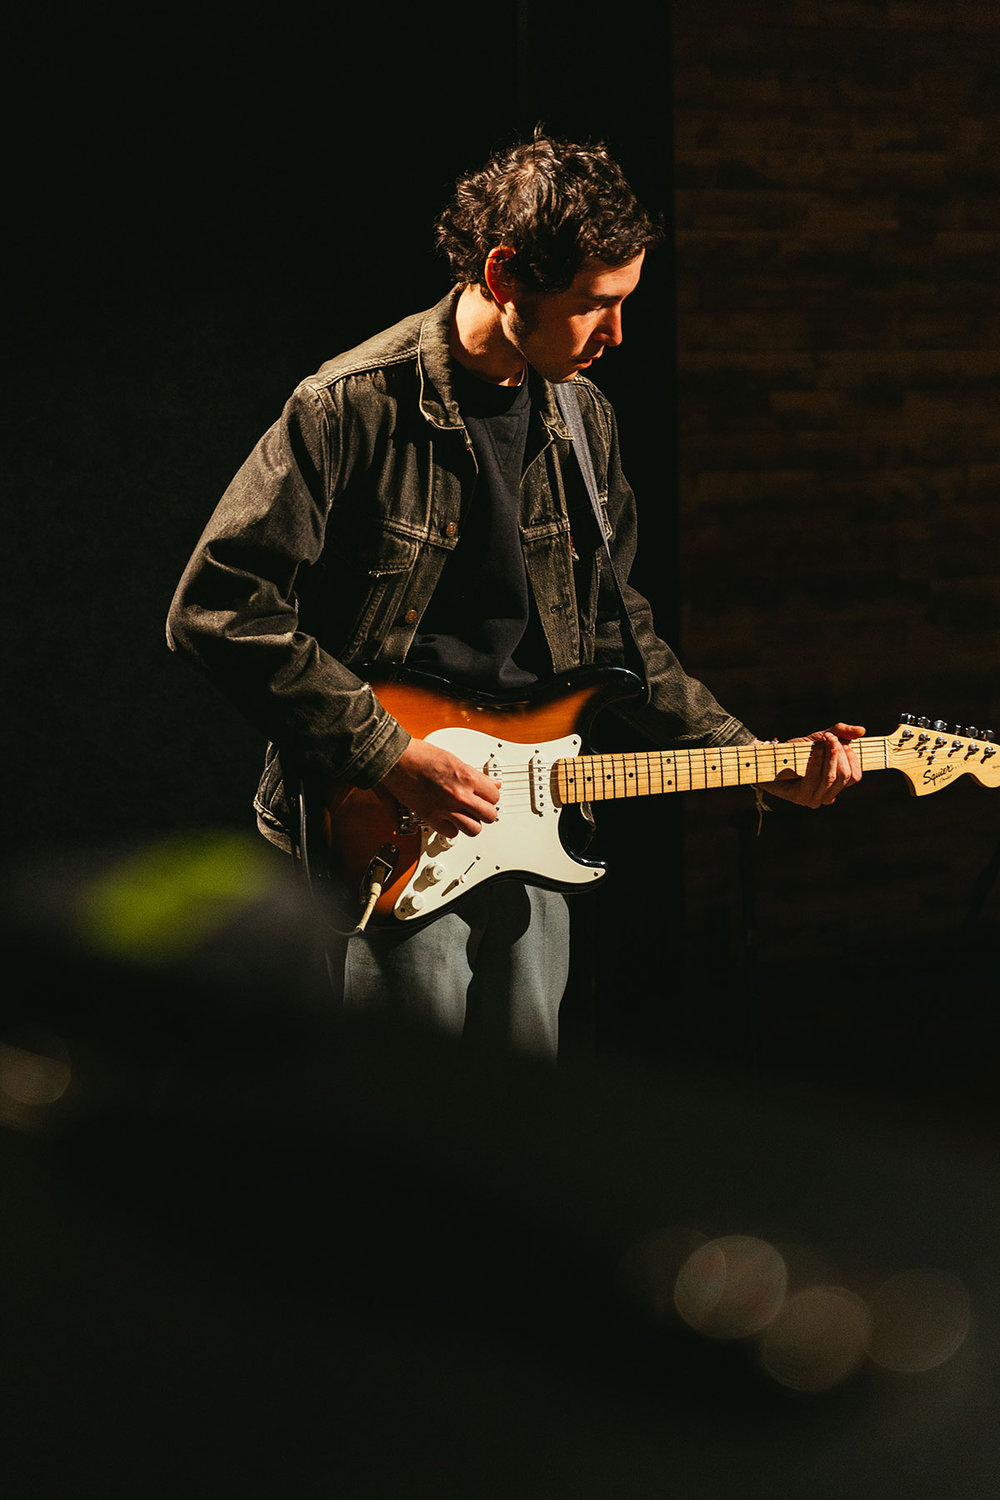 Be-Forest-on-Audiotree-Live-17.jpg